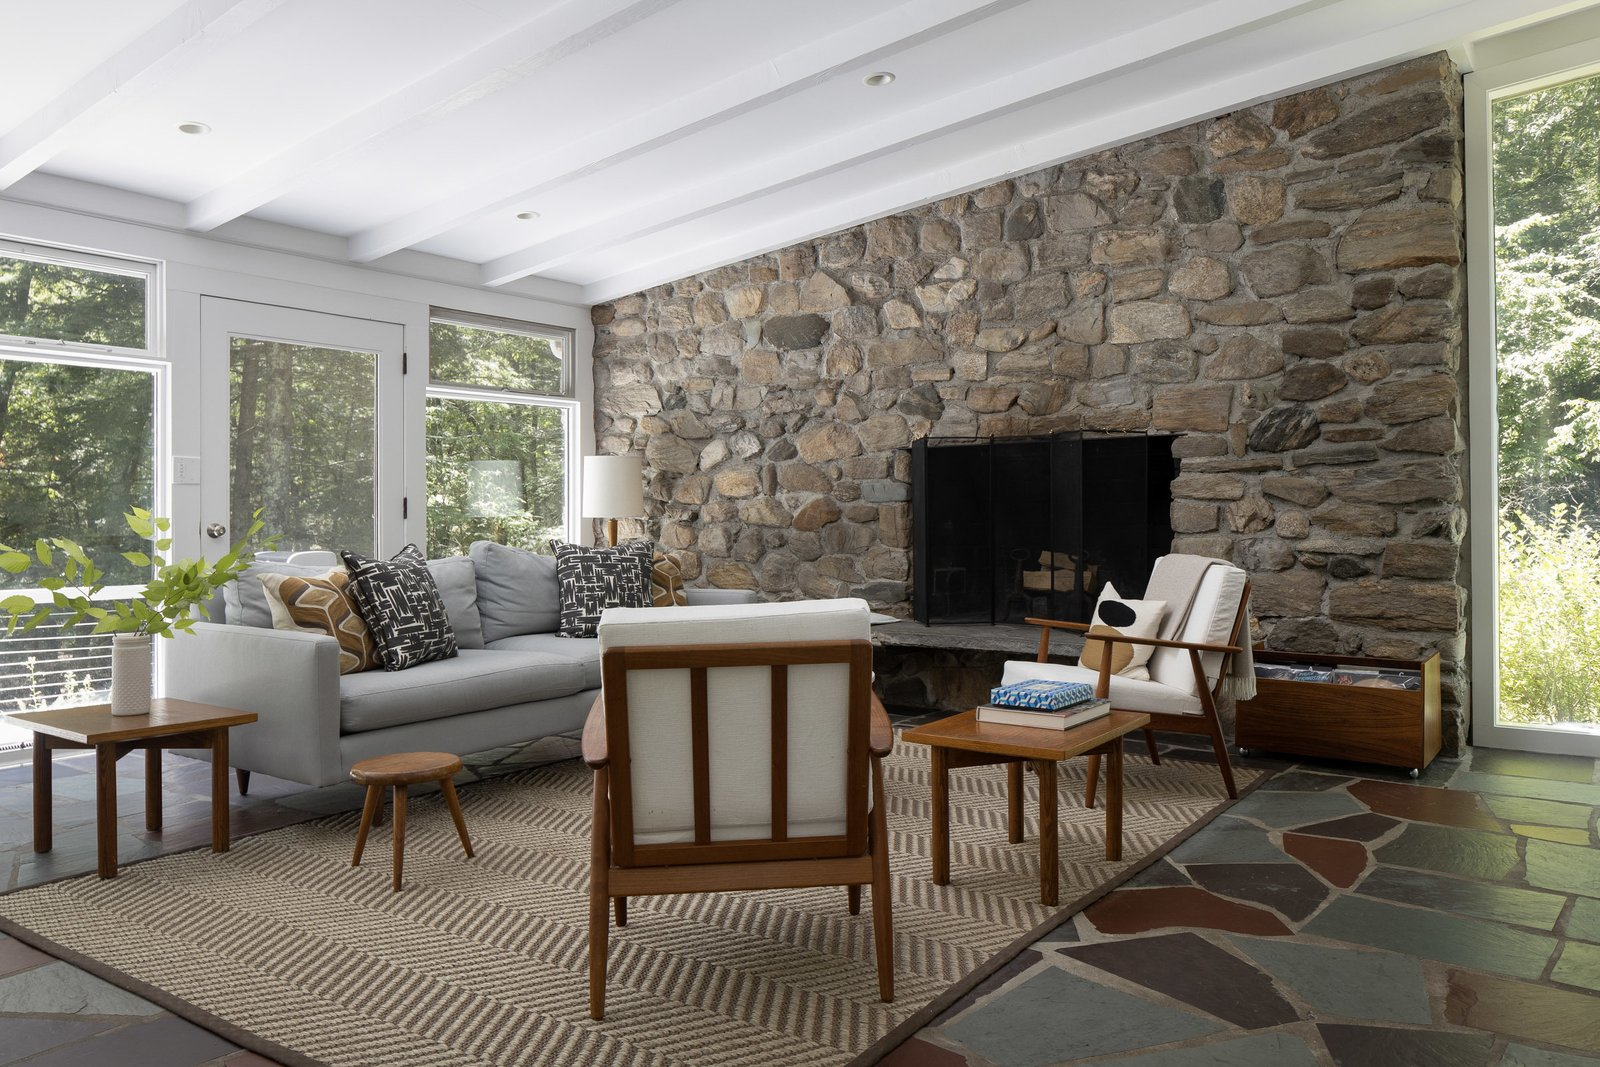 Crisp, white finishes balance the commanding stone fireplace, which is original to the home. A door leads to the back deck.  Photo 3 of 15 in For $1.35M, Snag This Renovated Midcentury Retreat Nestled in a Hardwood Forest